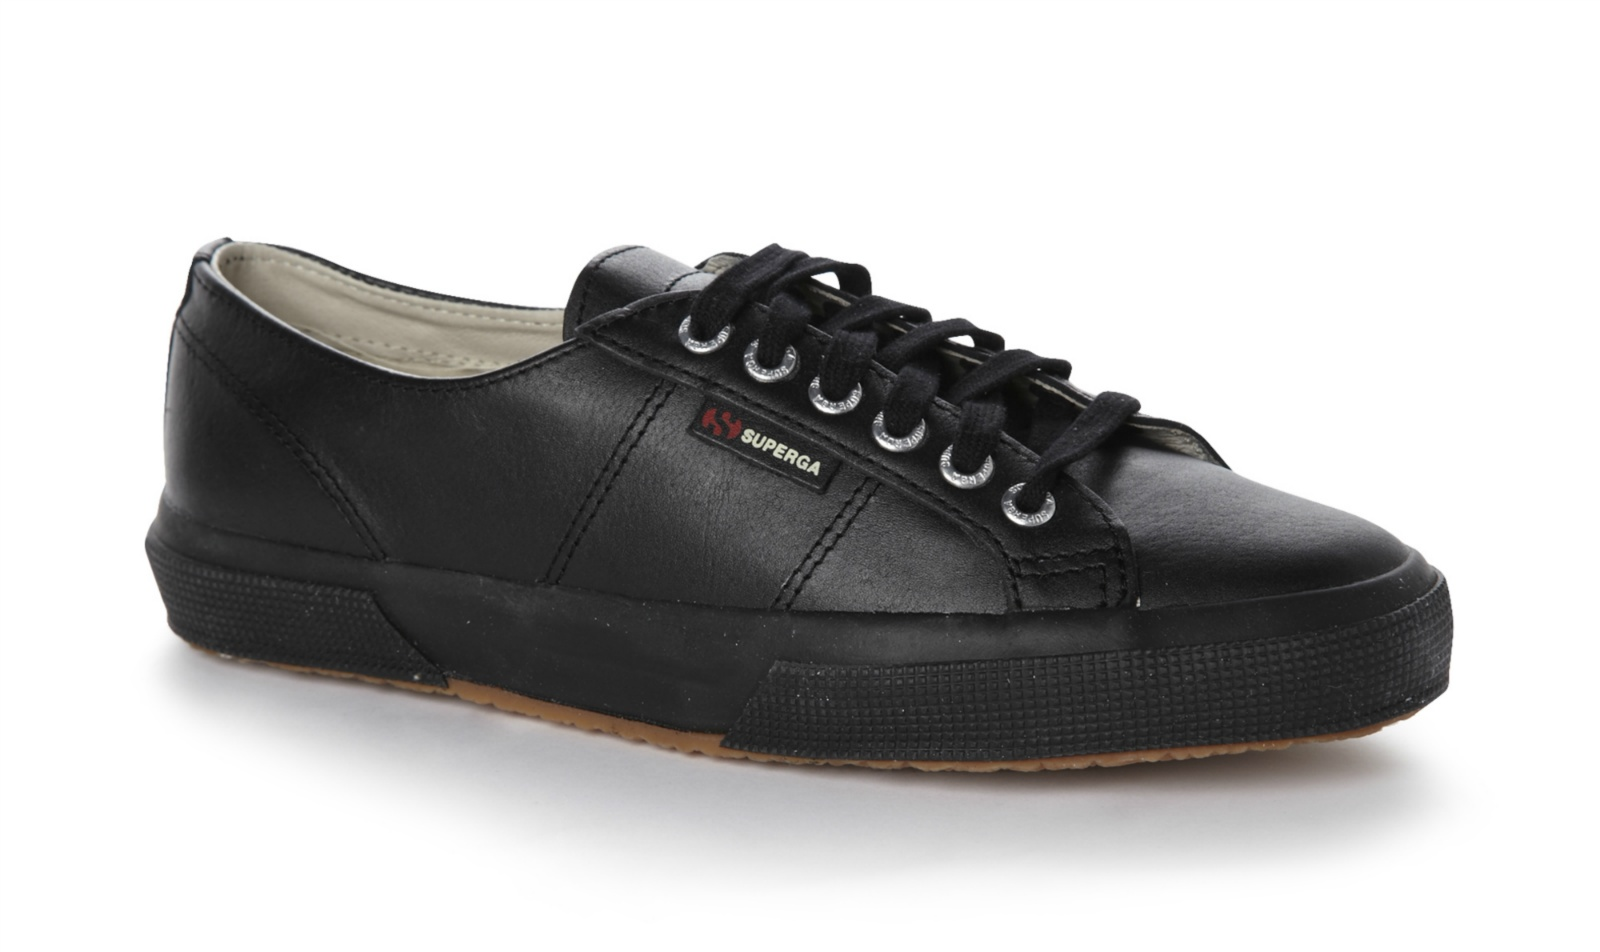 Superga Unisex 2750-Fglu Lace Up Leather Trainers Tennis Shoes ...